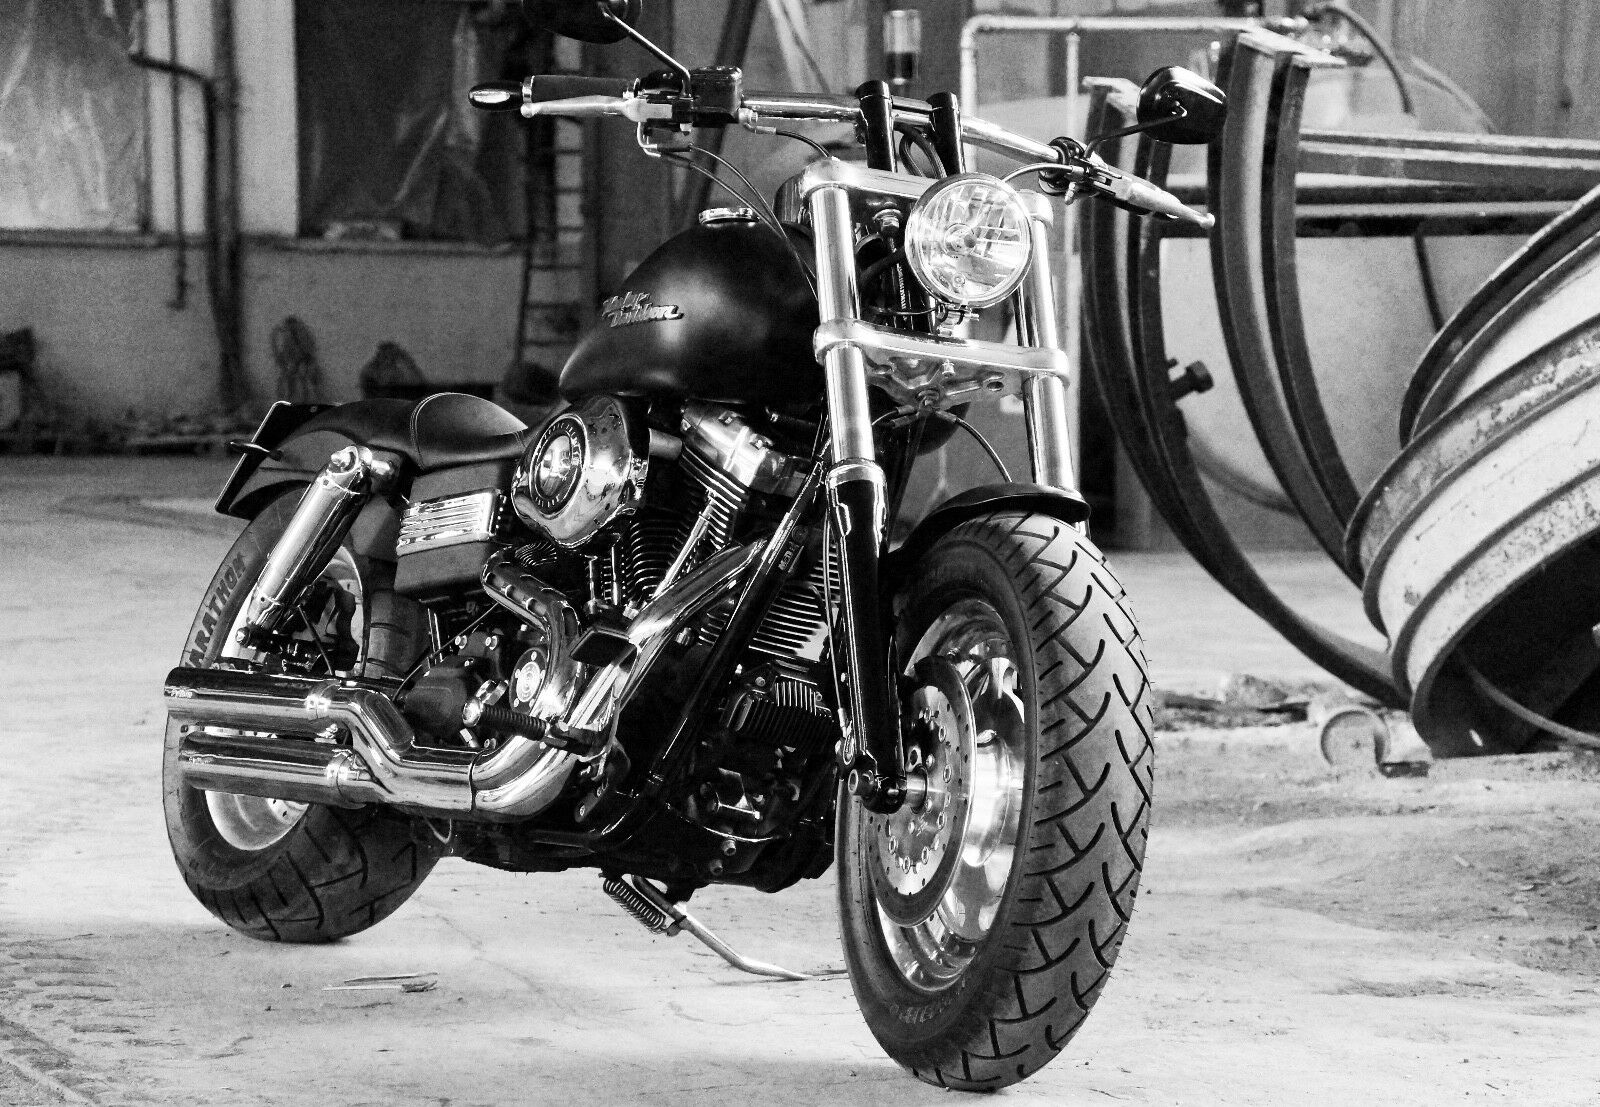 SUPERCOOL HARLEY DAVIDSON Motorcycle Canvas Picture #114 Motorbike ...